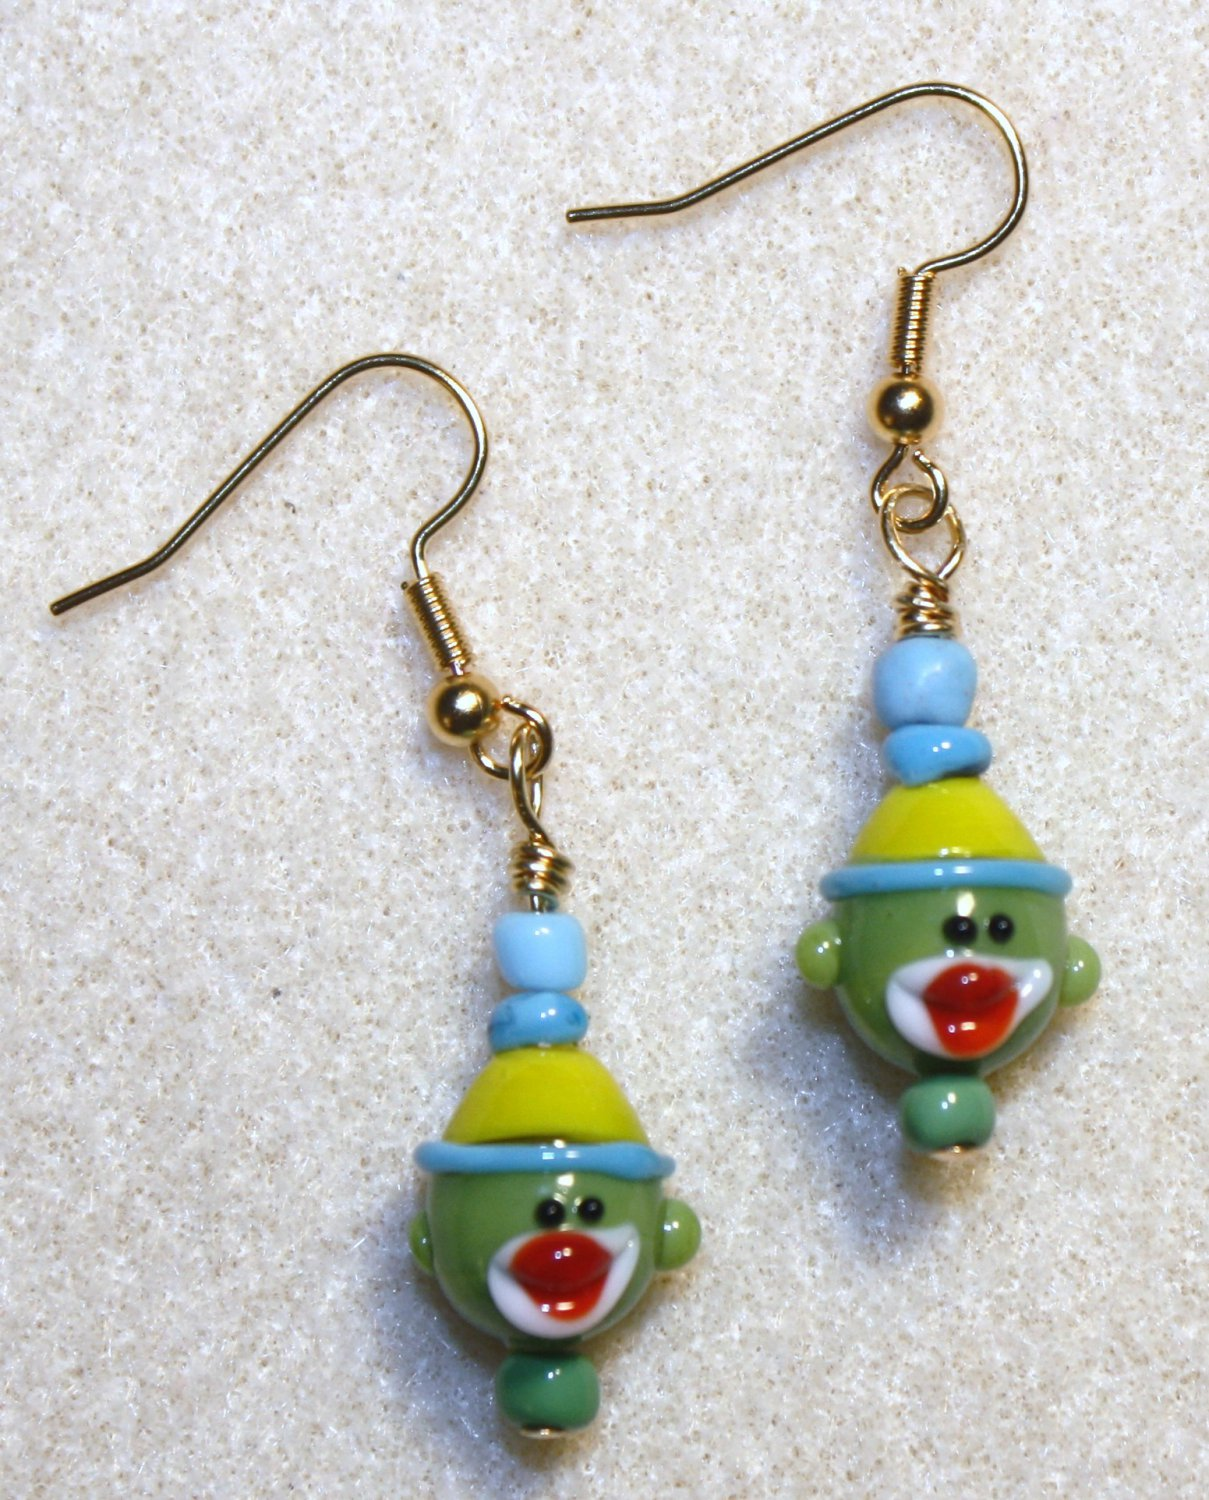 Green N' Blue Sock Monkey Earrings - Item #E285